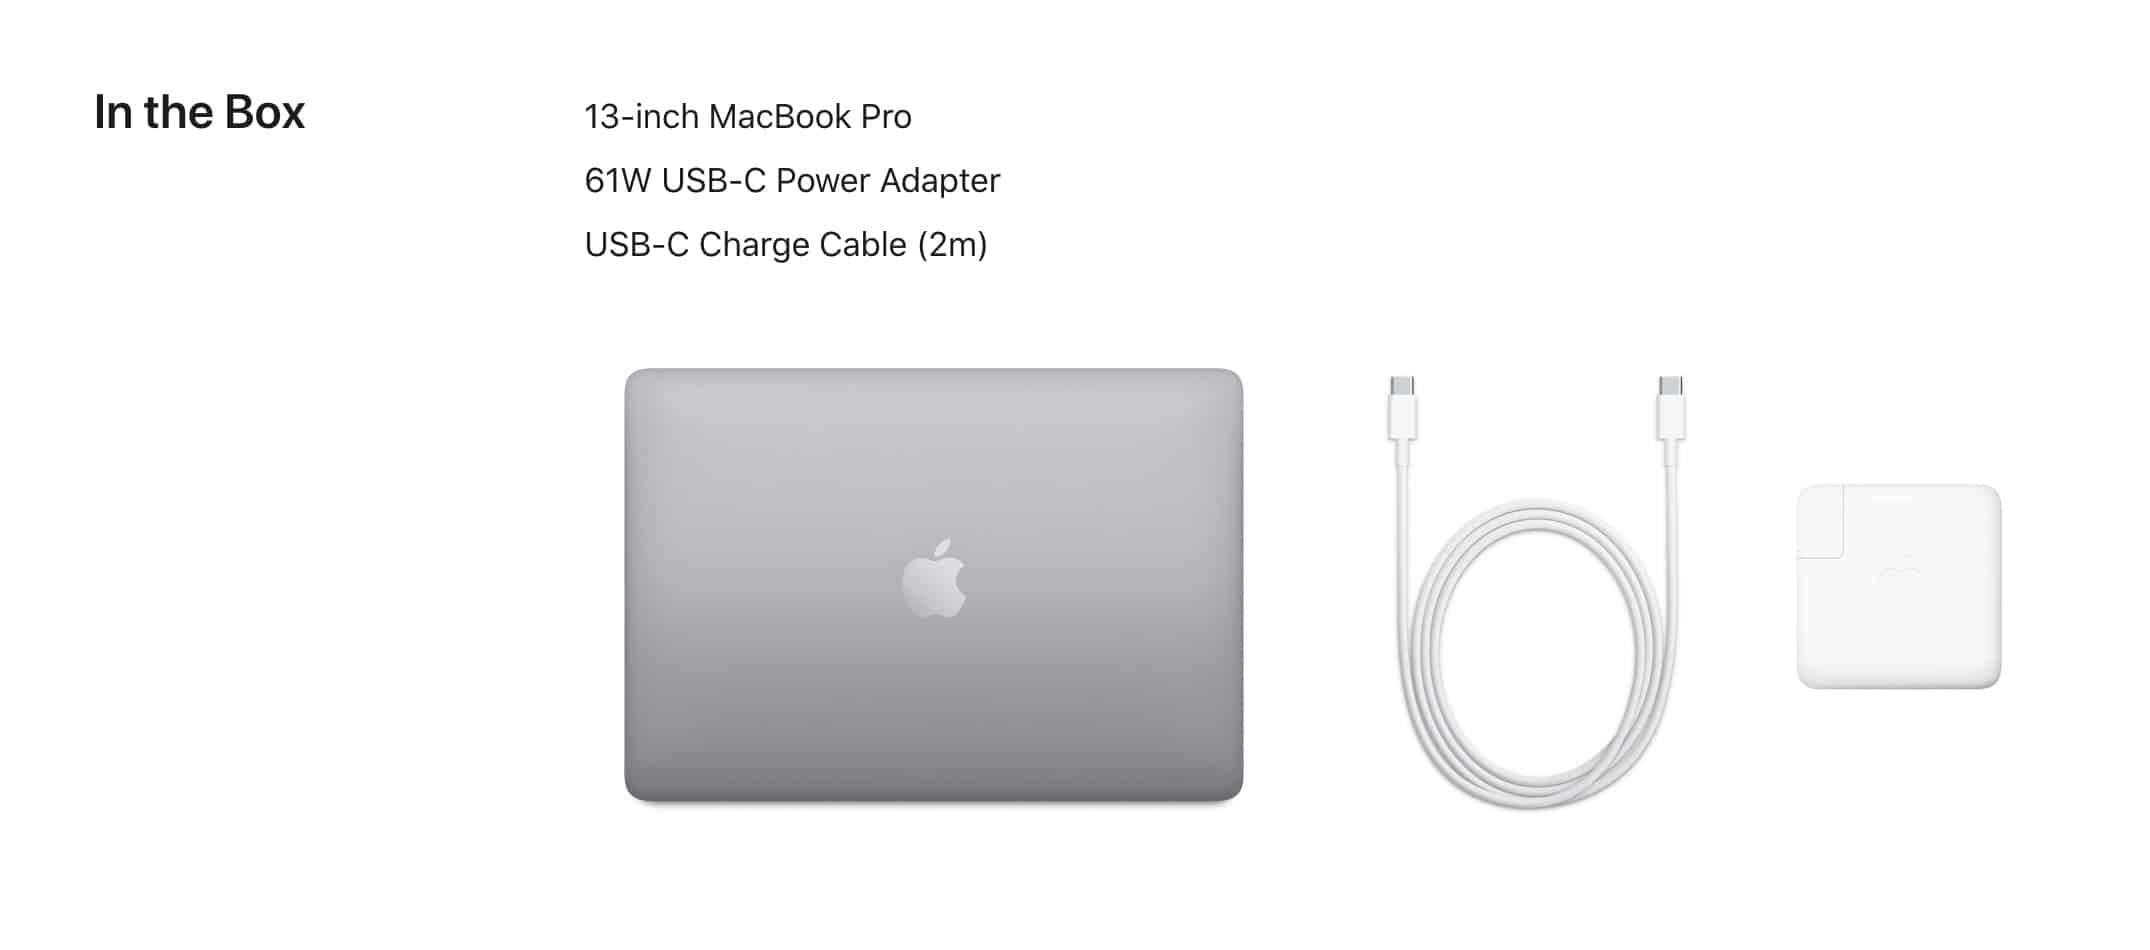 laptopvang-what-in-box-macbool-pro-2020-13-inch